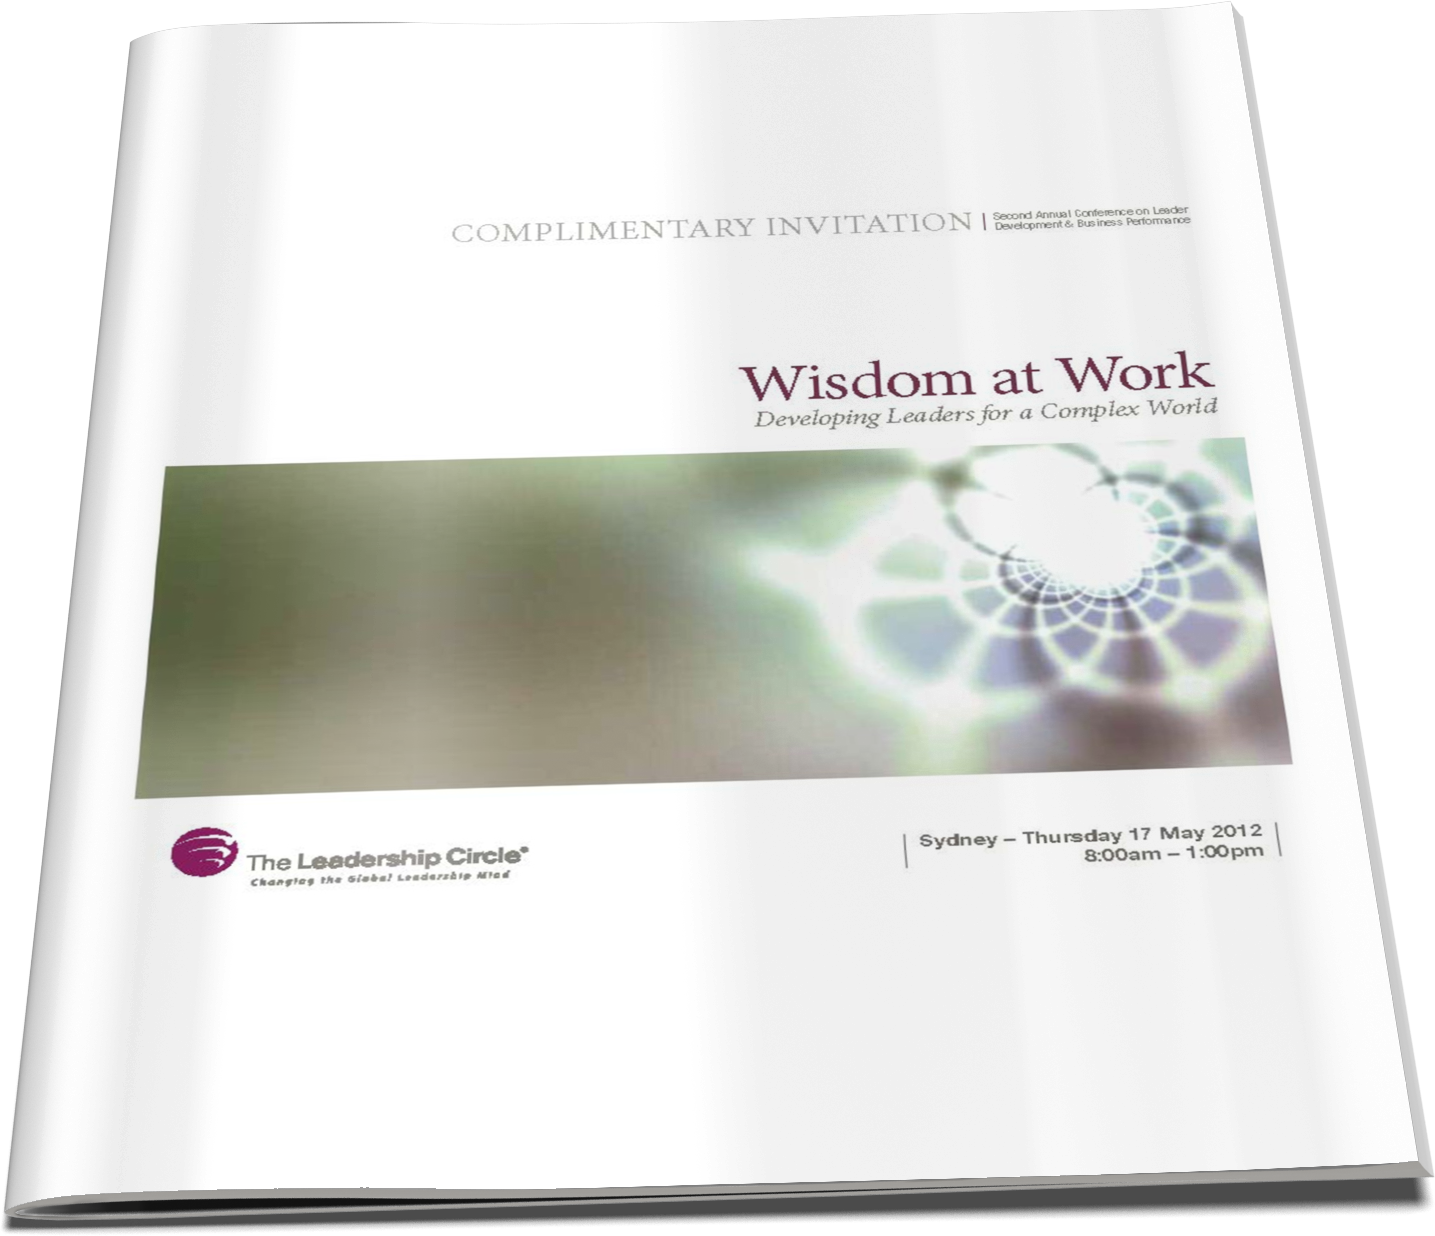 17 May, 2012 - Wisdom at Work: Developing Leaders for a Complex World